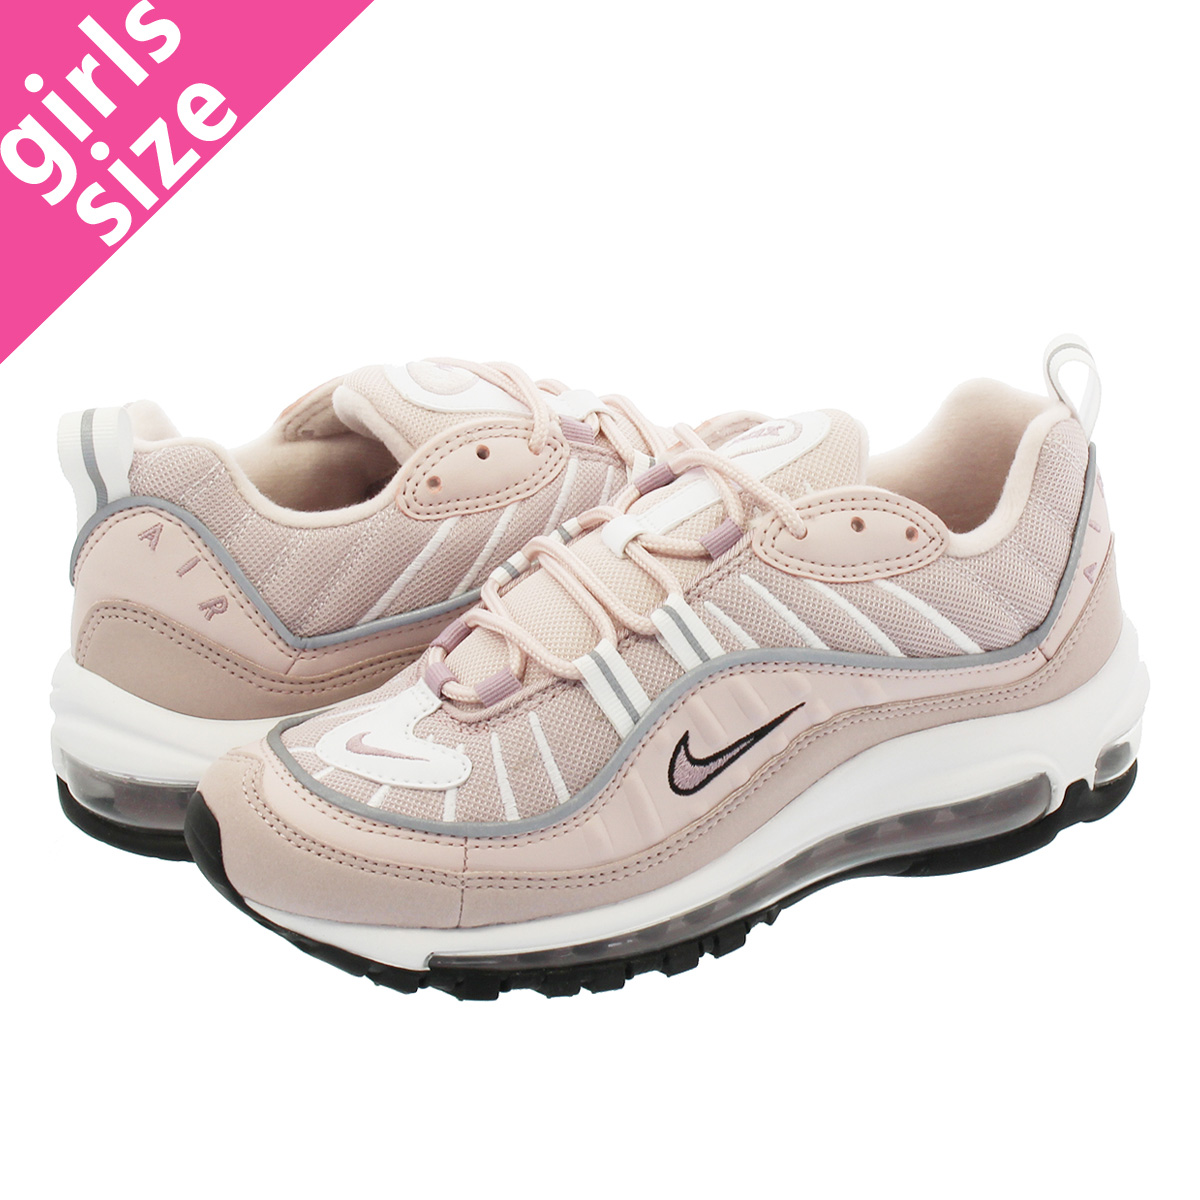 pretty nice d14ba cfb03 LOWTEX BIG-SMALL SHOP NIKE WMNS AIR MAX 98 Nike women Air Max 98 BARELY  ROSEELEMENTAL ROSEPARTICLE ROSE  Rakuten Global Market